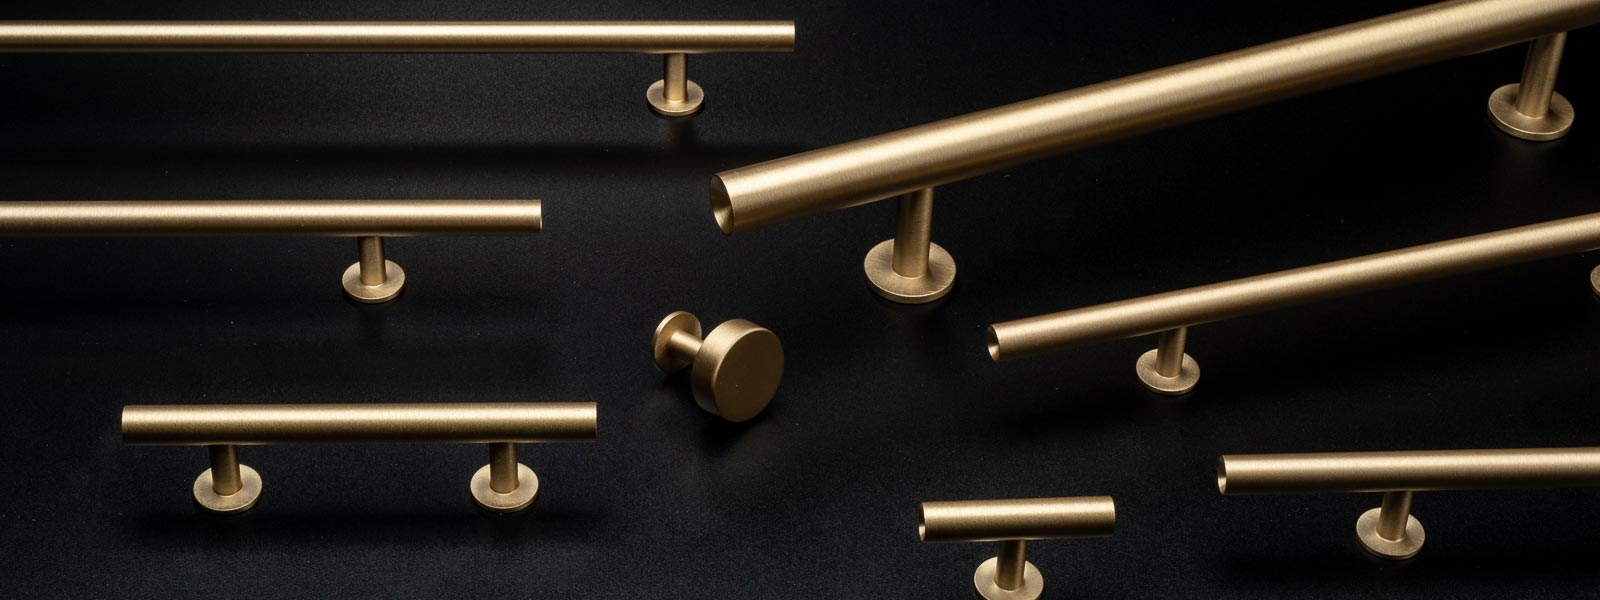 Brushed Brass Round Bar Series